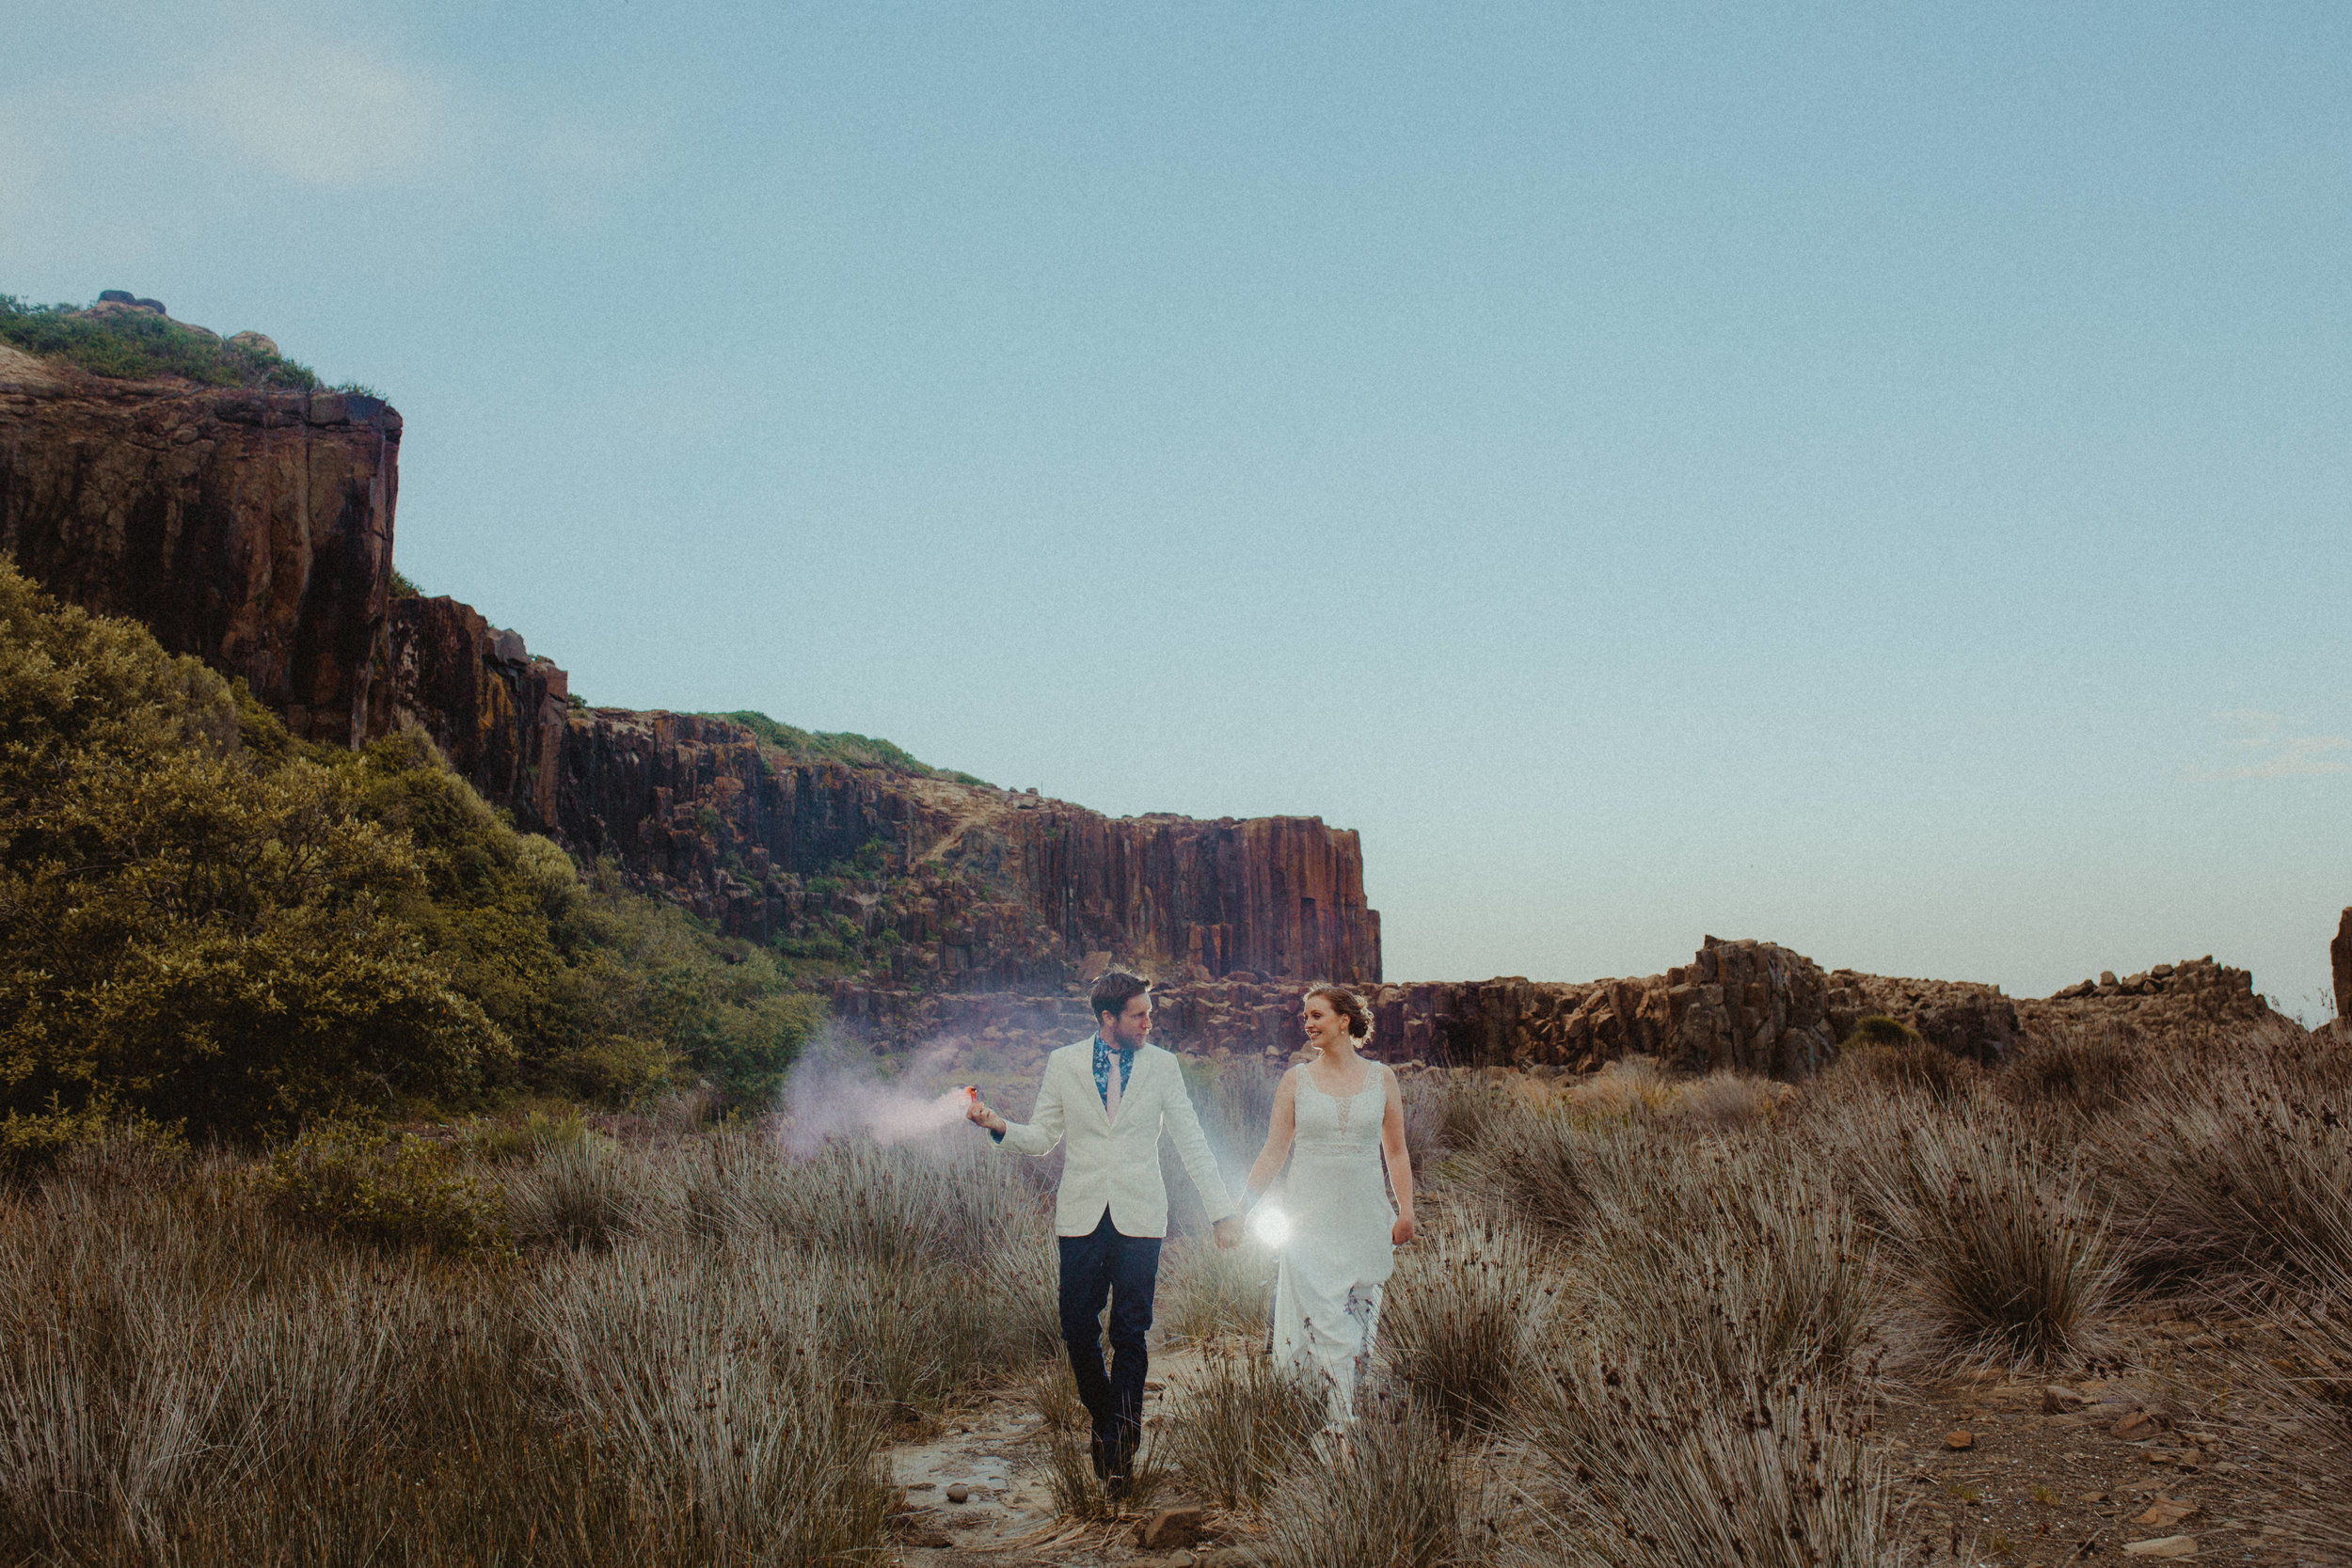 A bride and groom holding hands while holding a flair in a desert type enviroment at bombo quarry, NSW.